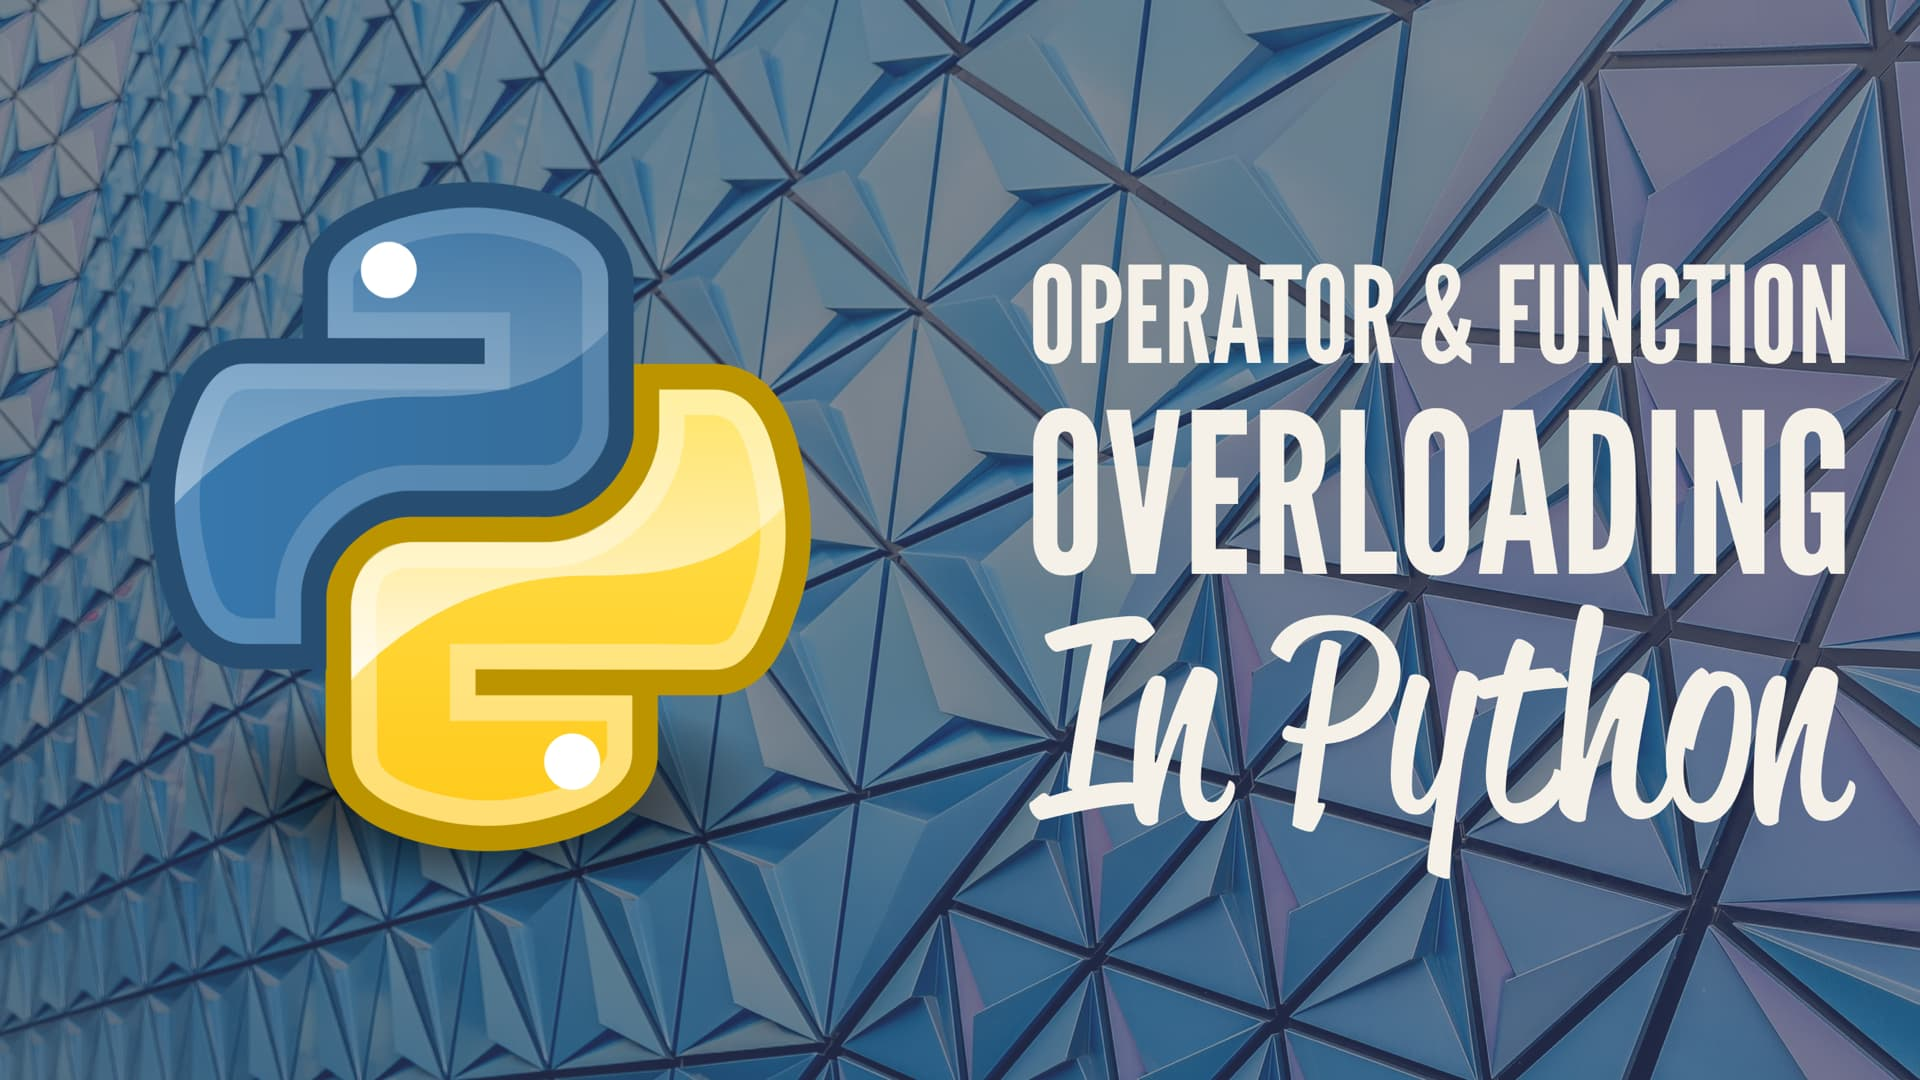 Operator and Function Overloading in Python